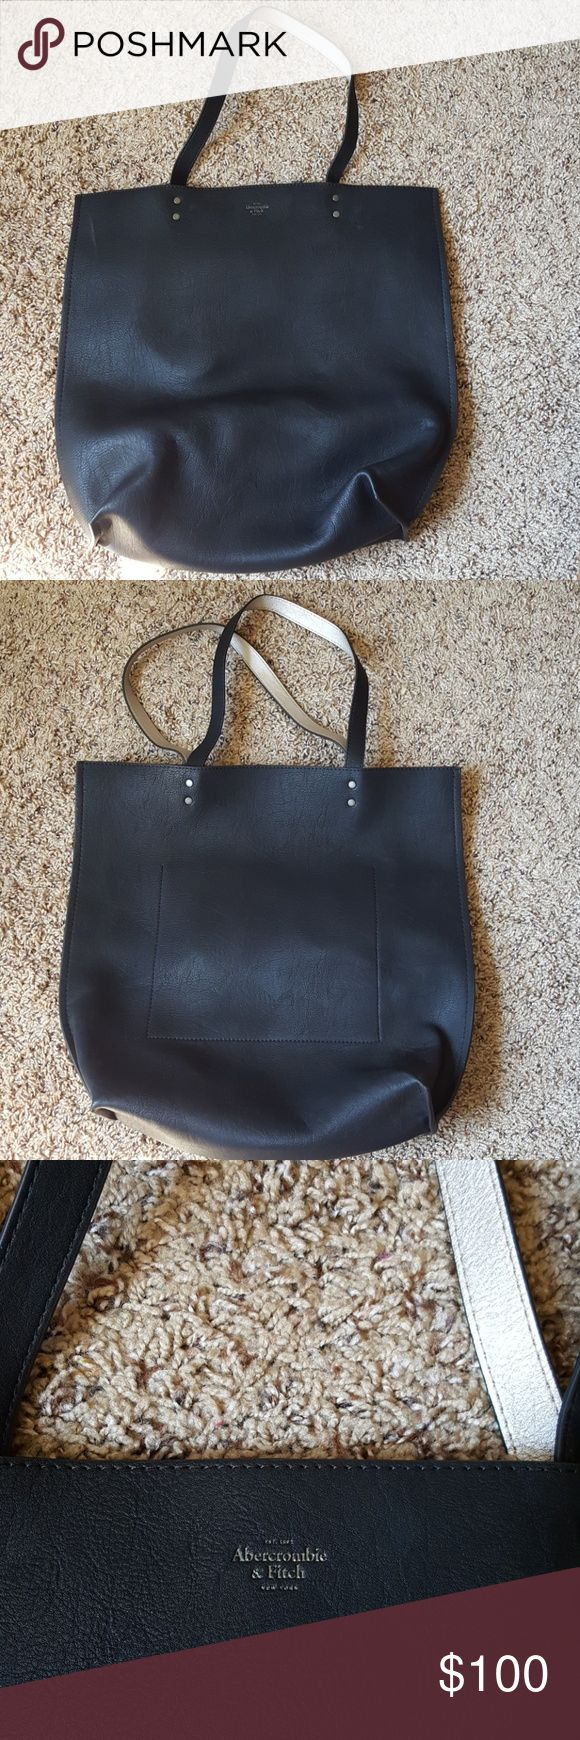 Abercrombie and Fitch pure leather reversible bag. Never used. NWOT. Black and silver reversible tote. Abercrombie & Fitch Bags Totes